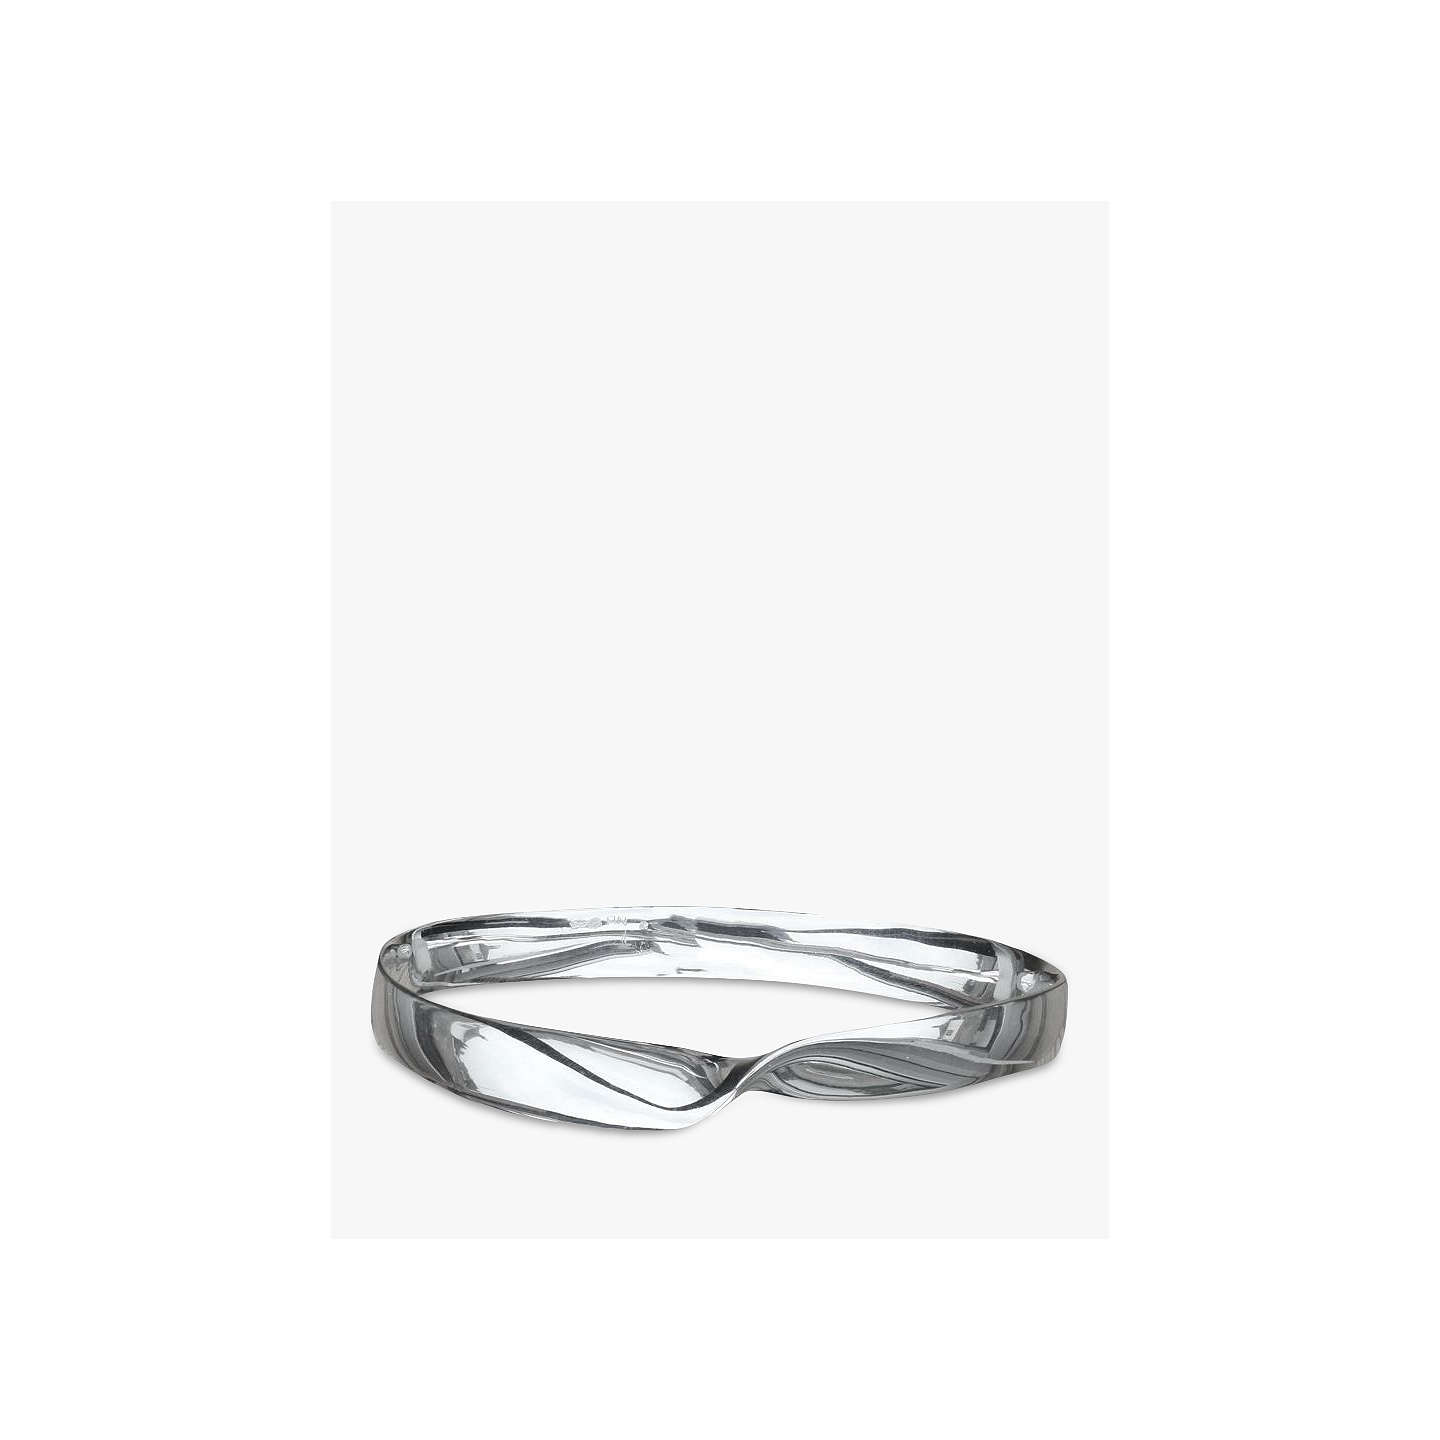 BuyNina B Solid Sterling Silver Bangle, Silver Online at johnlewis.com